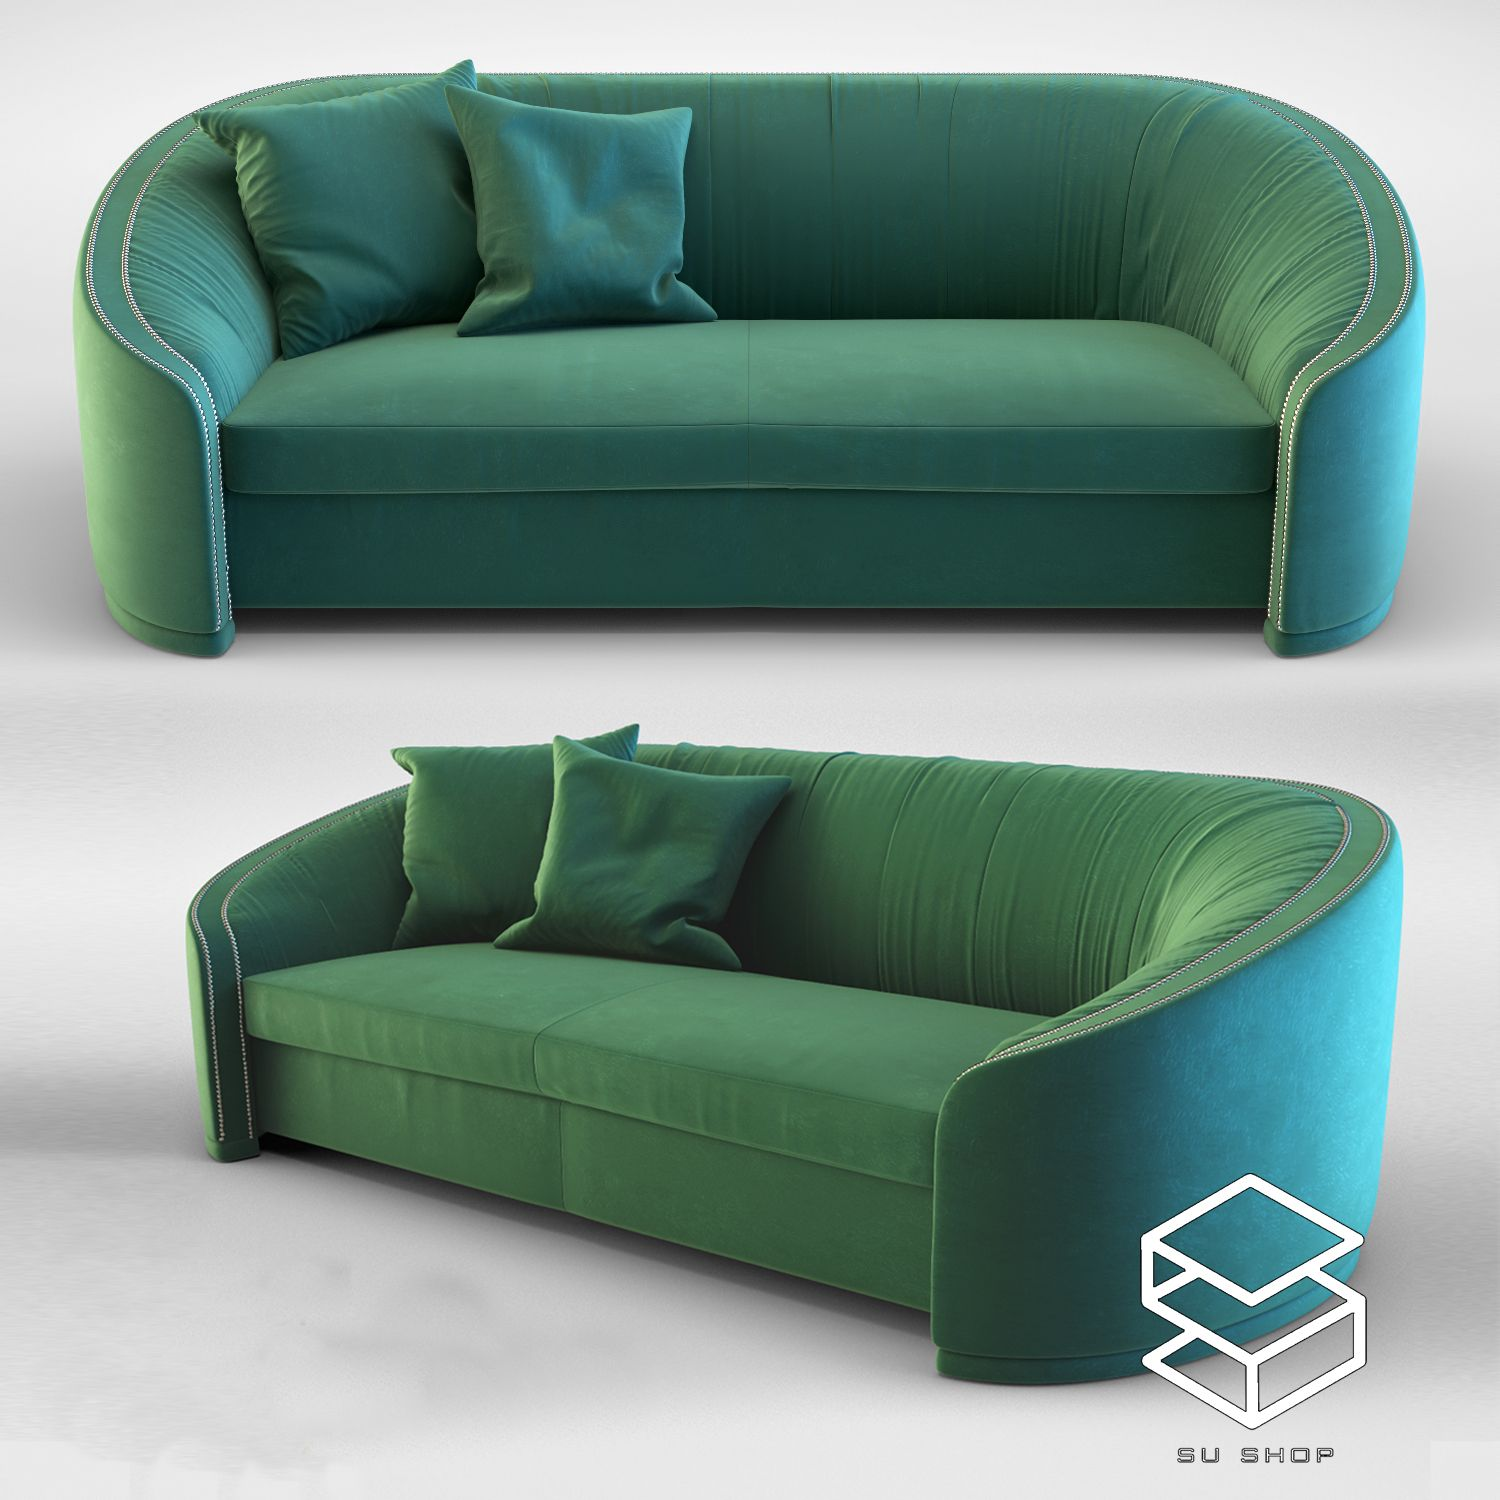 2845 Sofa Sketchup Model Free Download In 2020